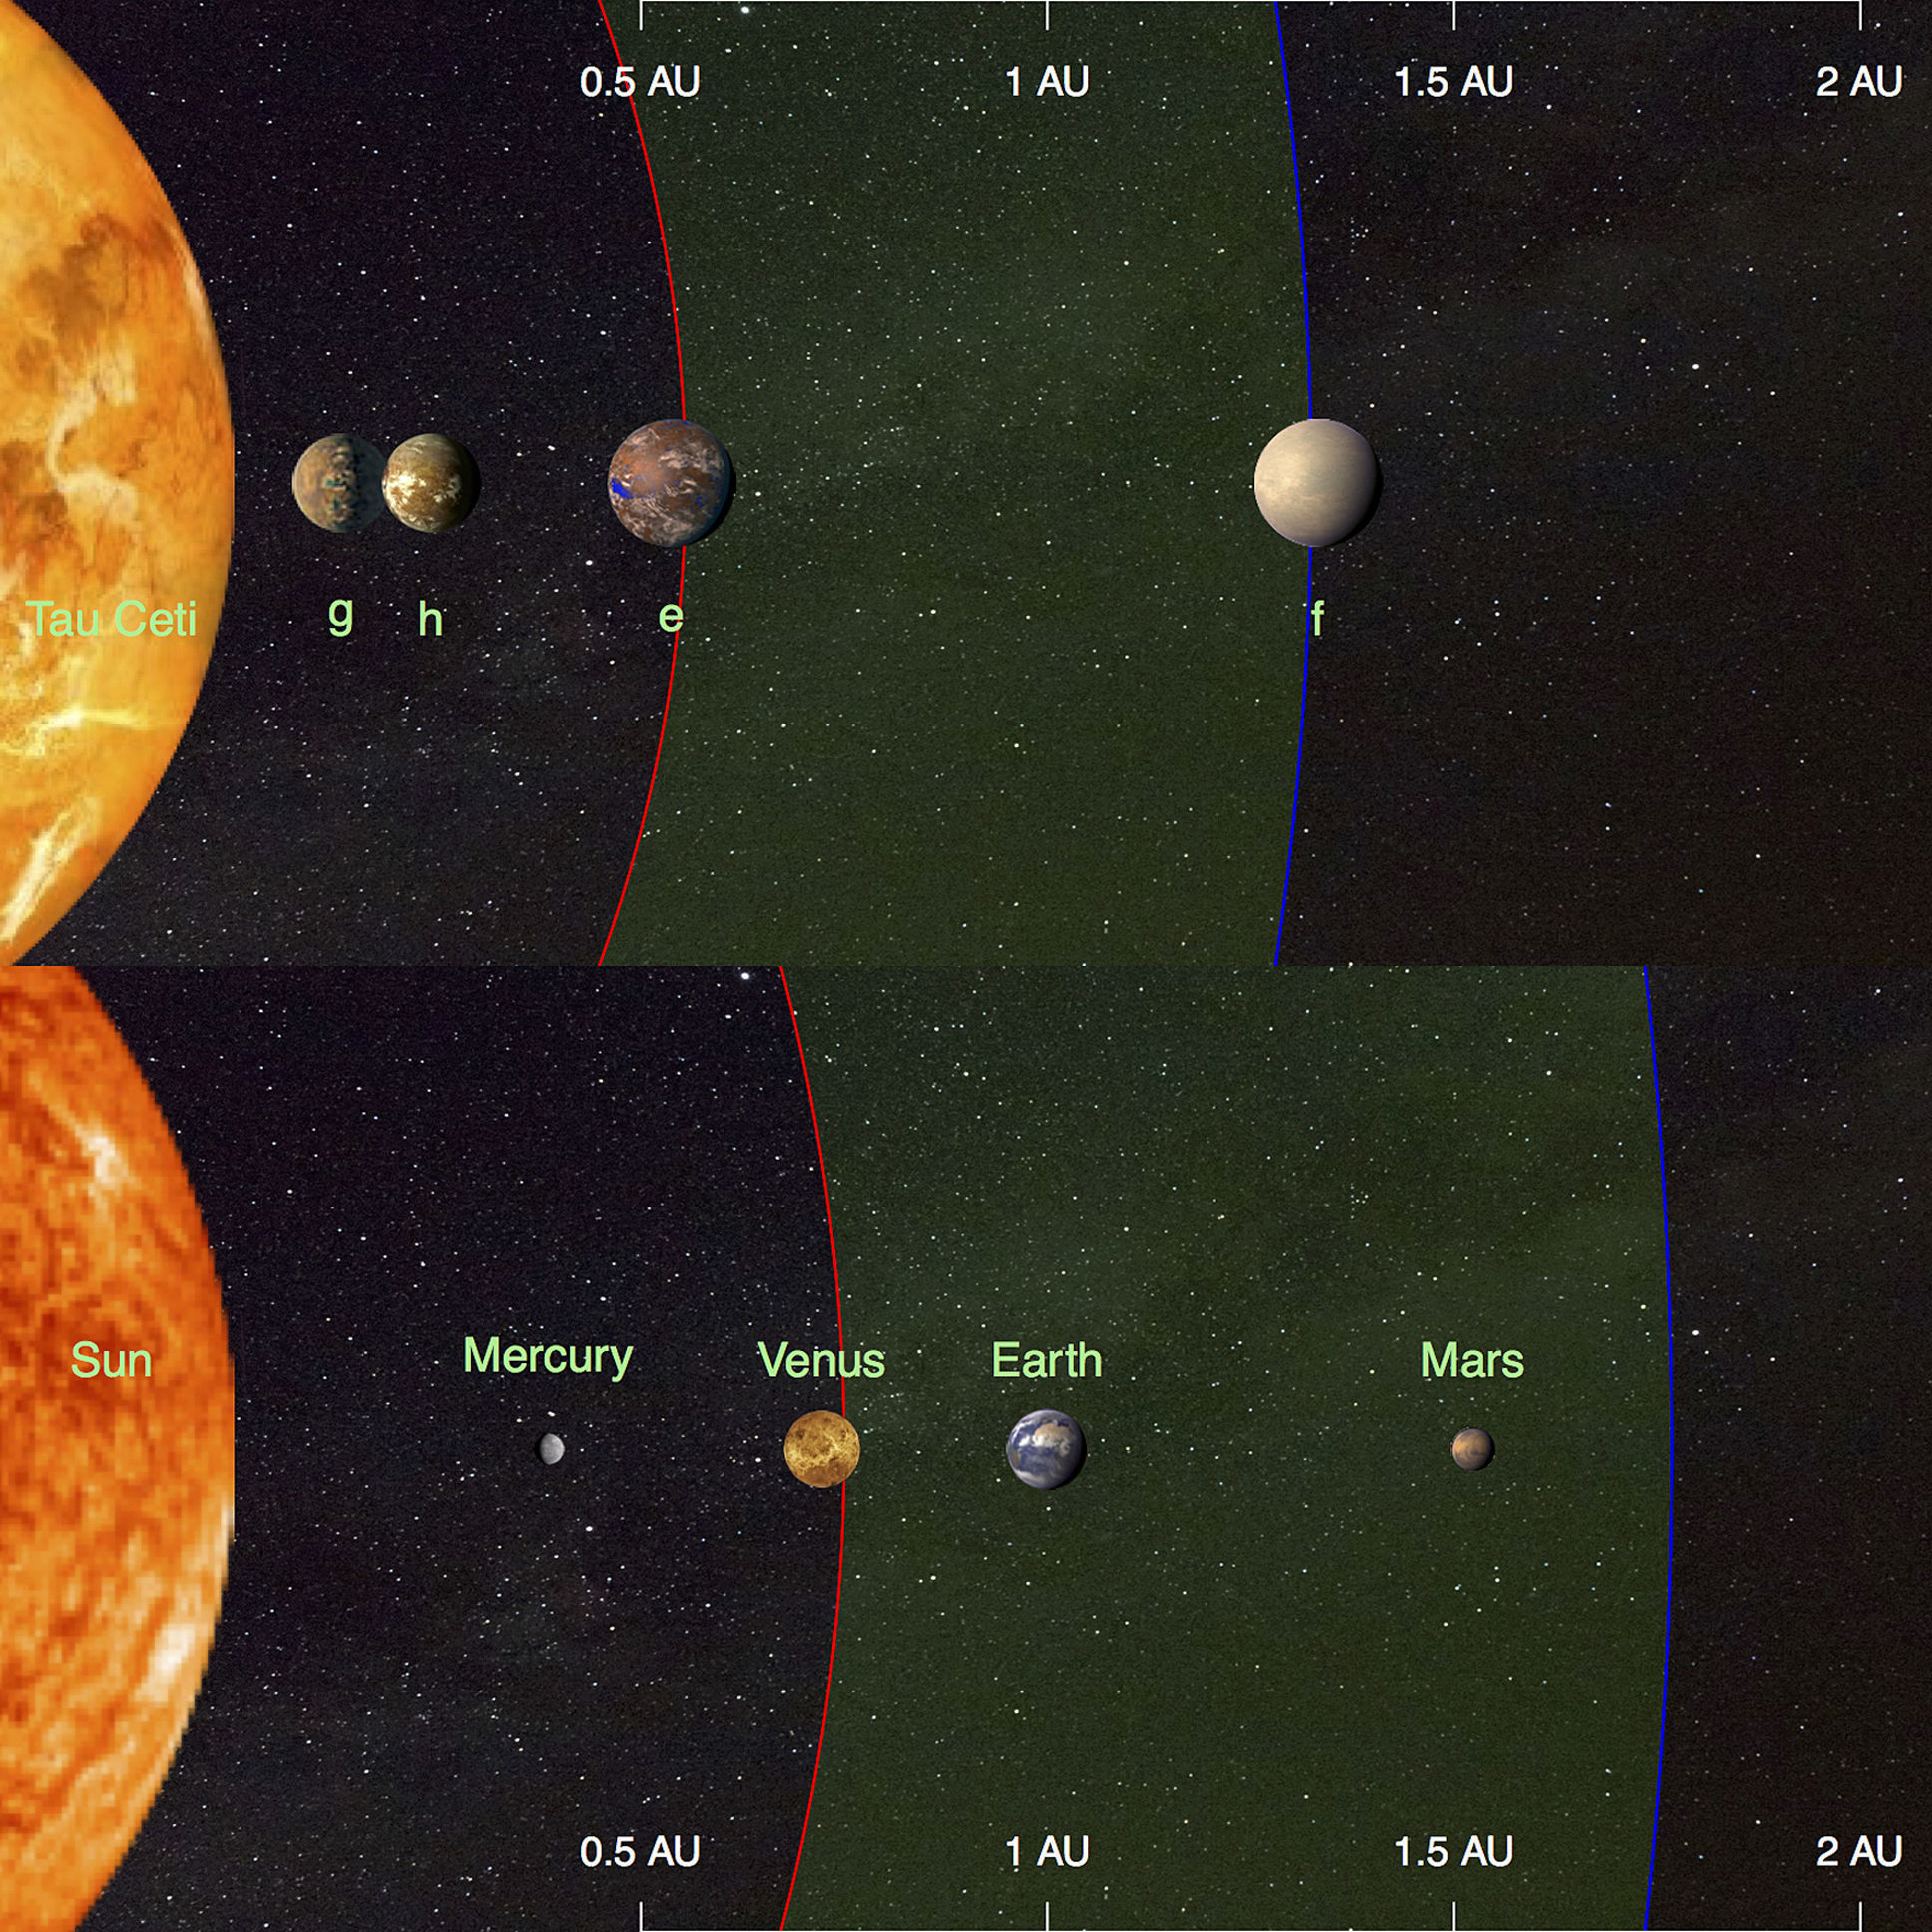 BEST QUALITY AVAILABLE Undated handout image issued by the University of Hertfordshire of an illustration of the sun and Tau Ceti's planetary systems and their habitable zones.